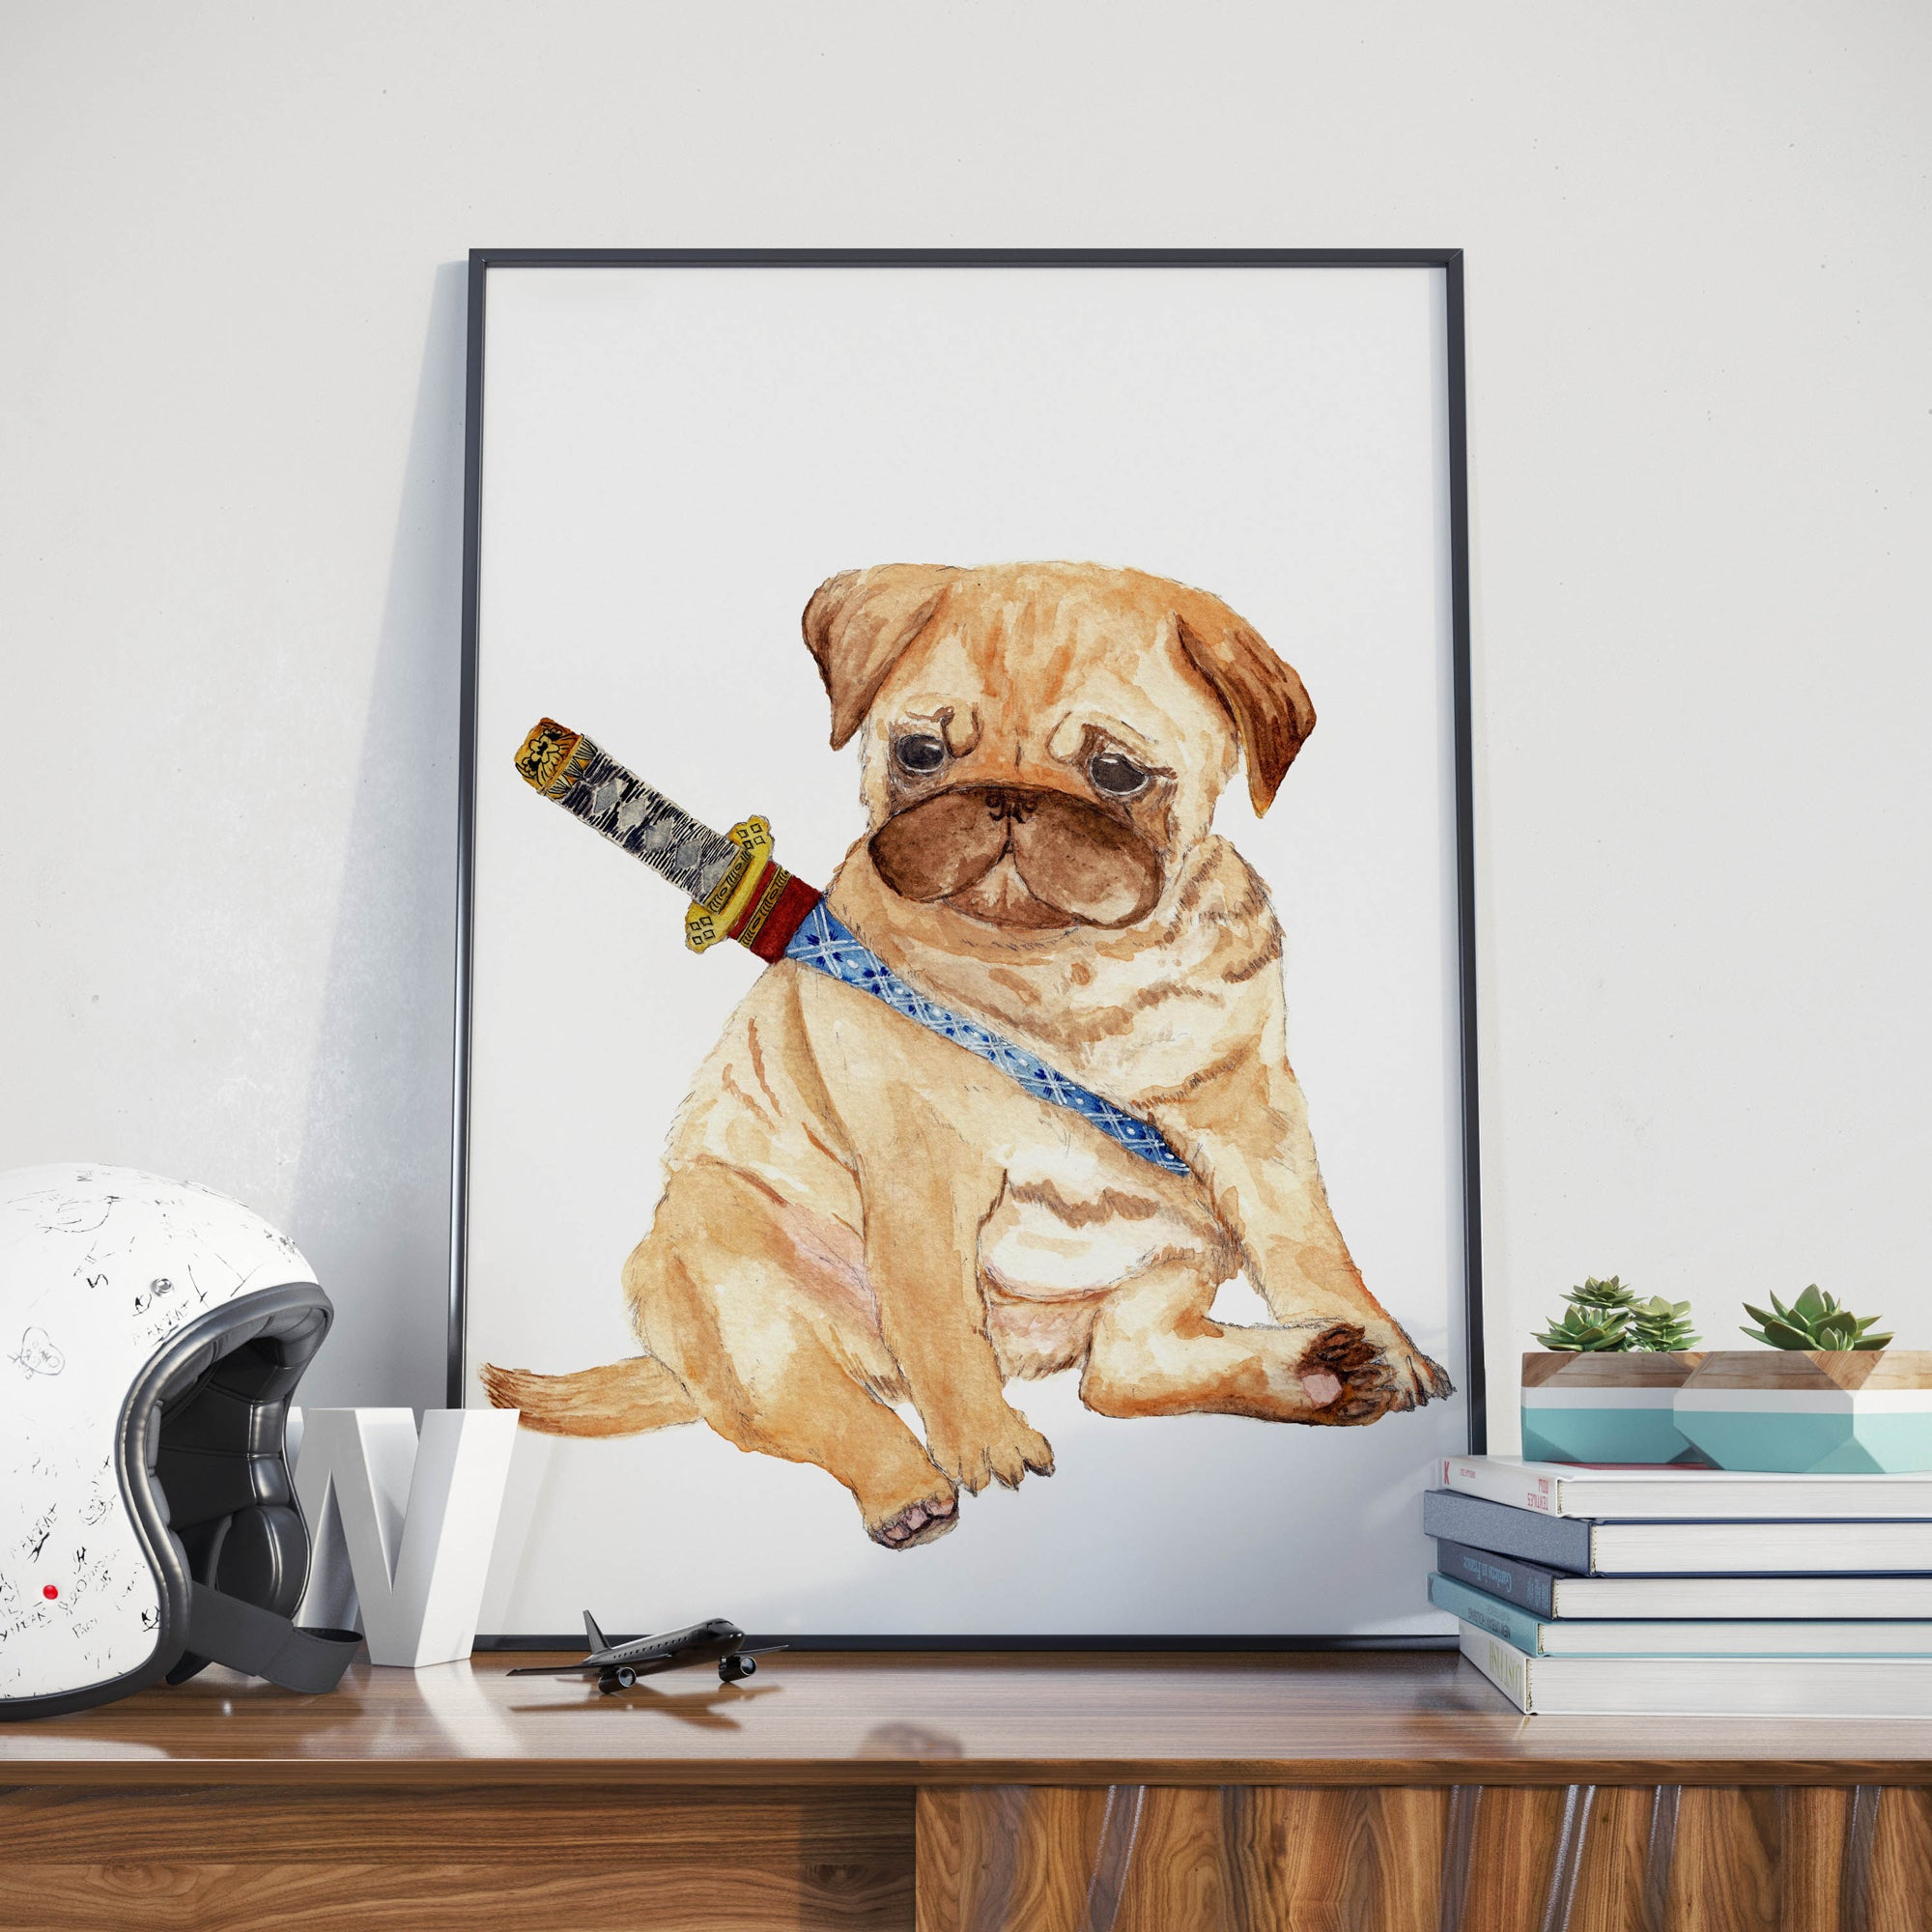 Ninja Pug- Unique Illustration -  Wall Art Print, Kids Room Poster, Nursery Decor, Pug Lover Gift